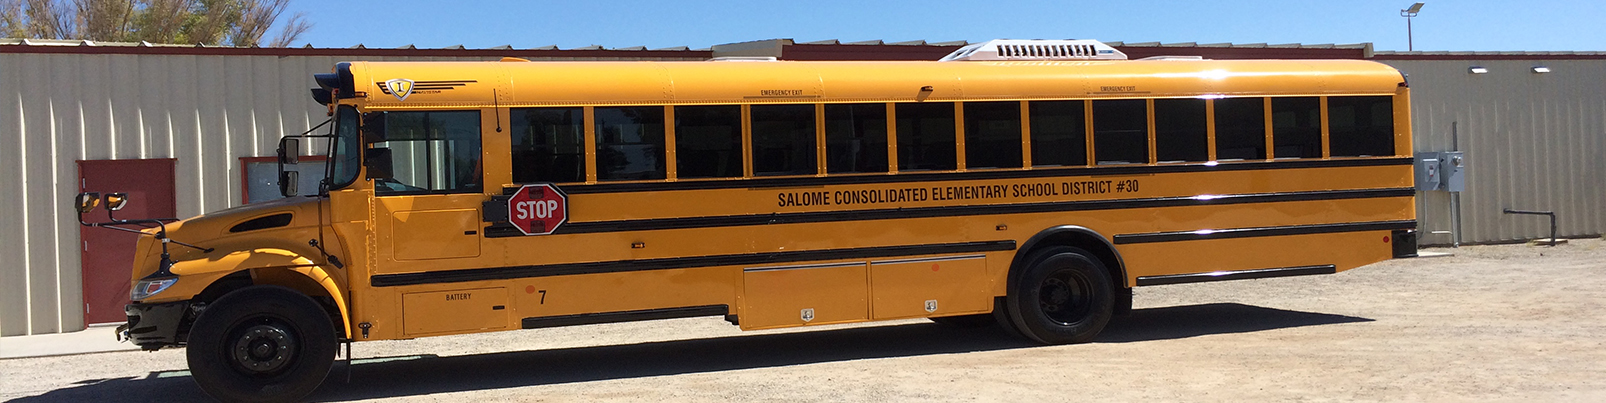 5-Salome School Bus